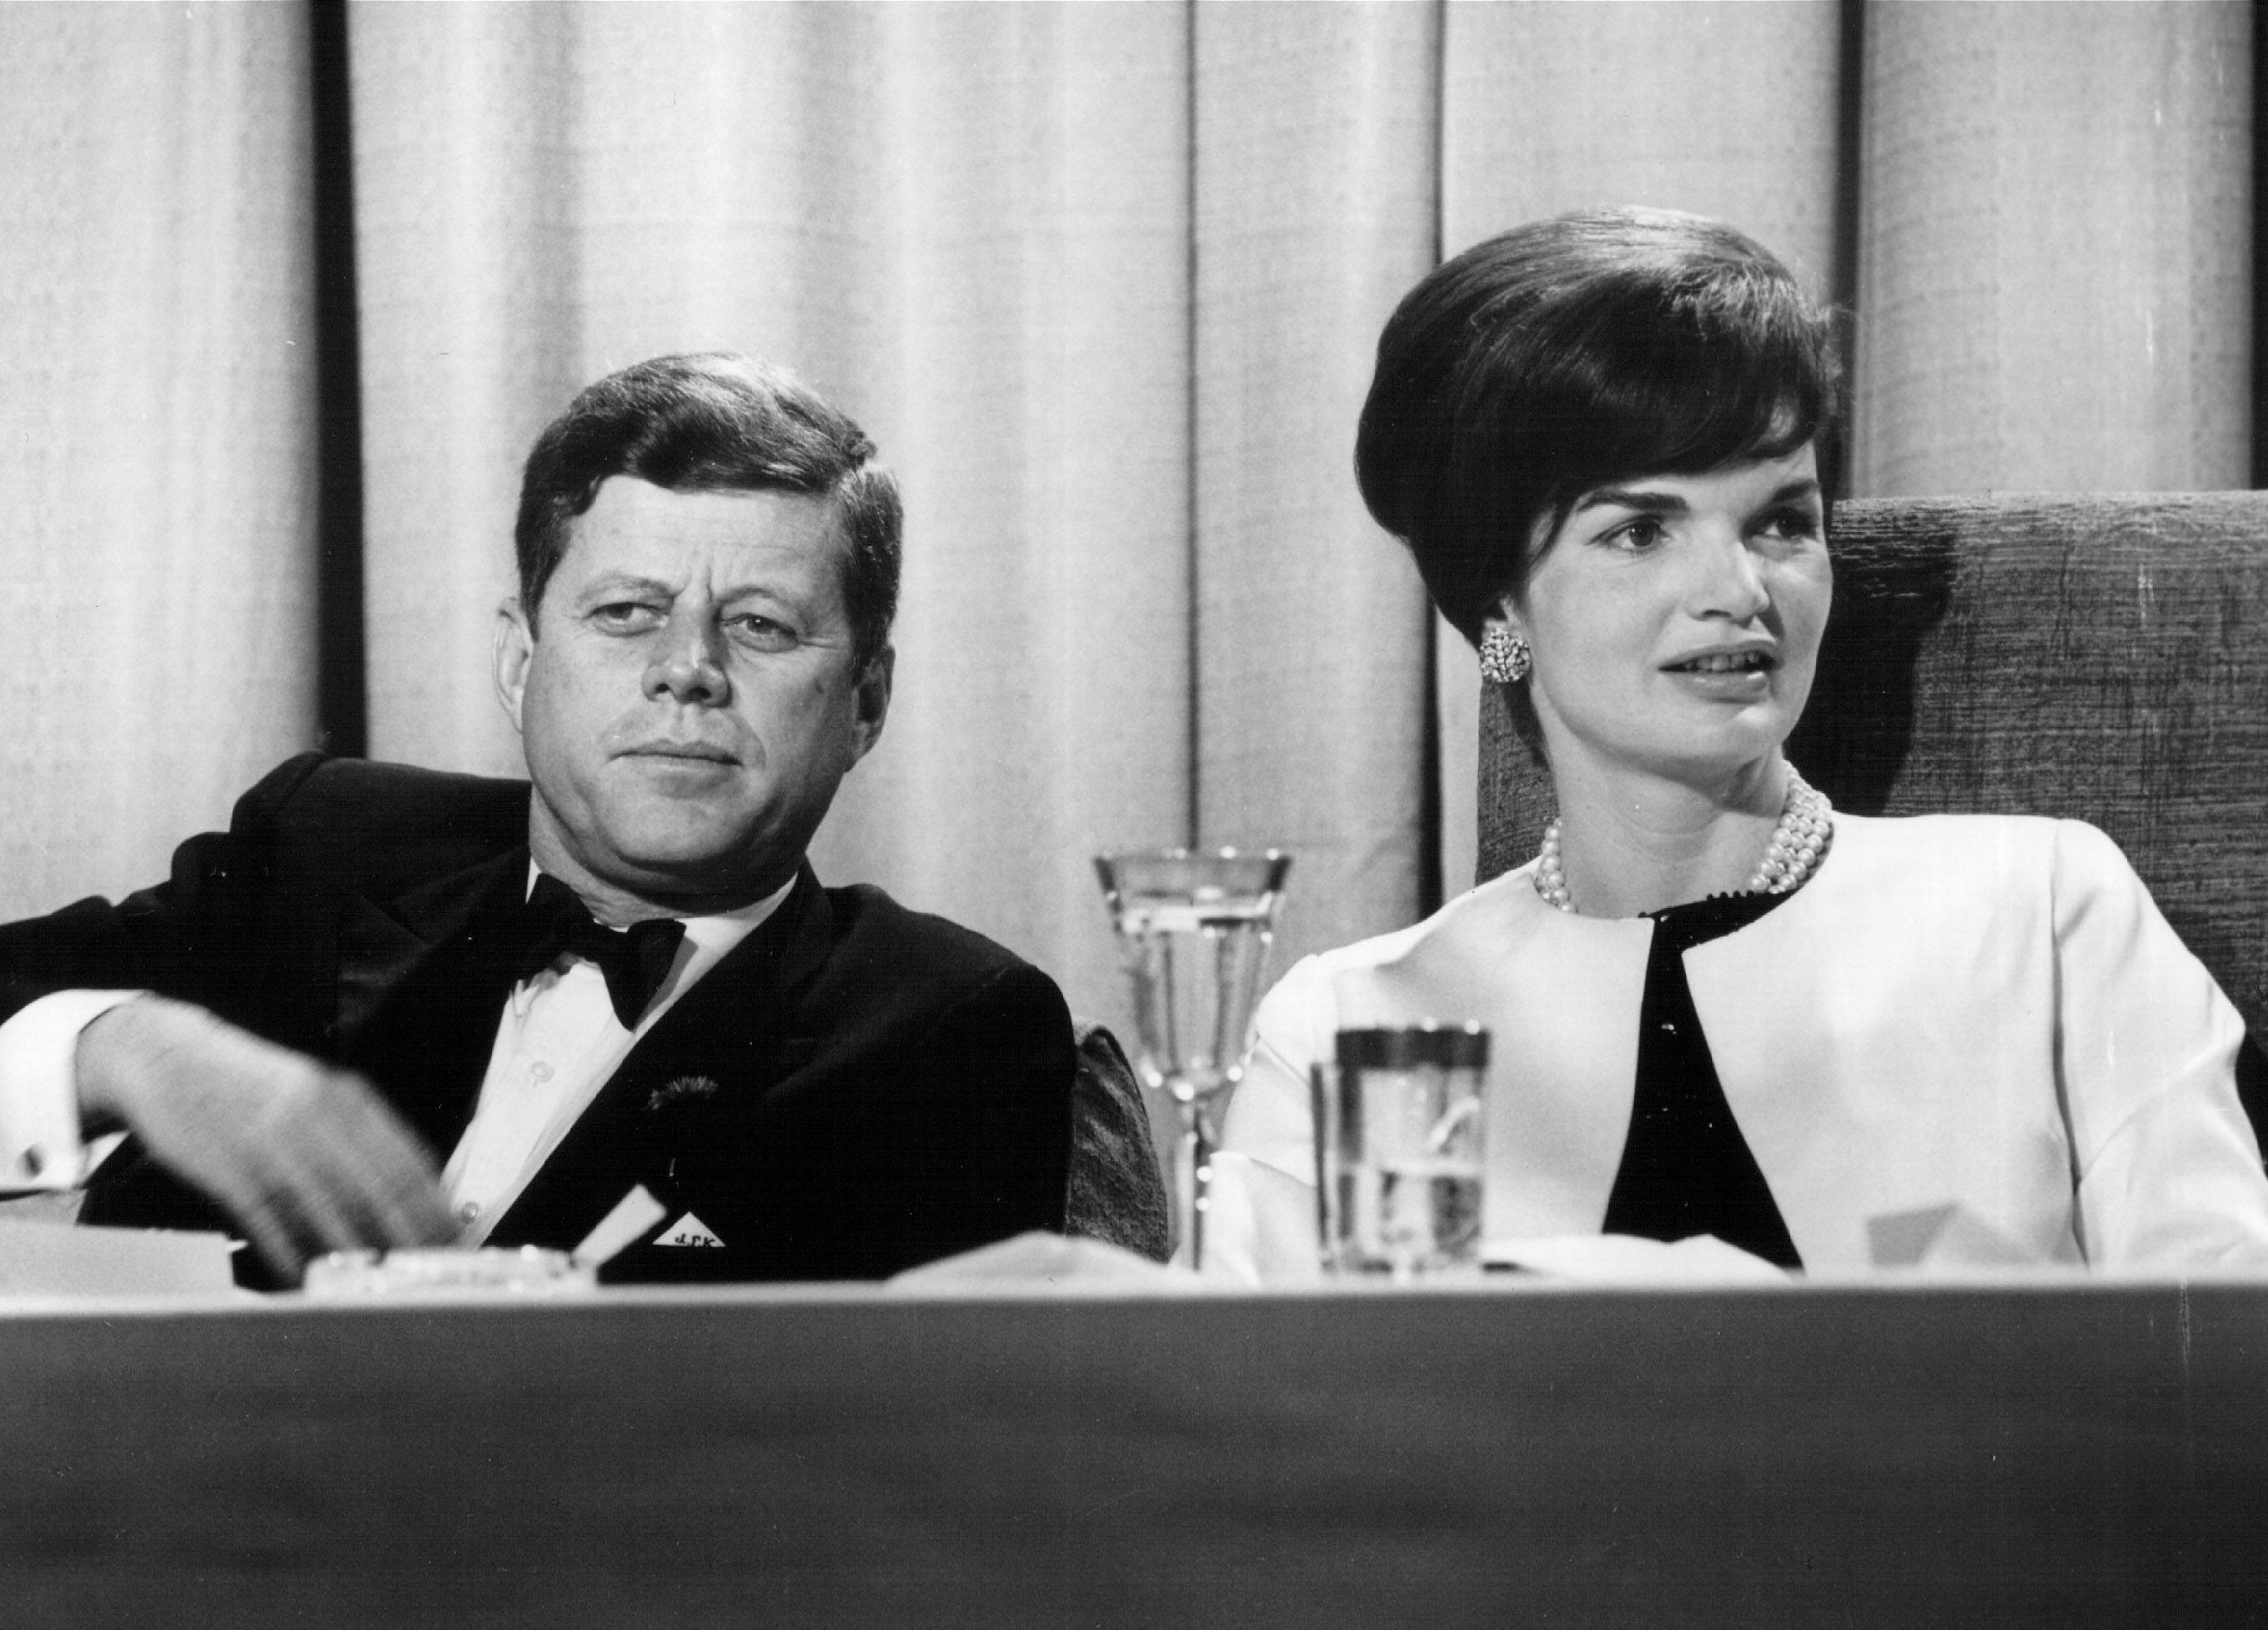 Surprising Secrets We Never Knew About JFK and Jackie Kennedy Until Now